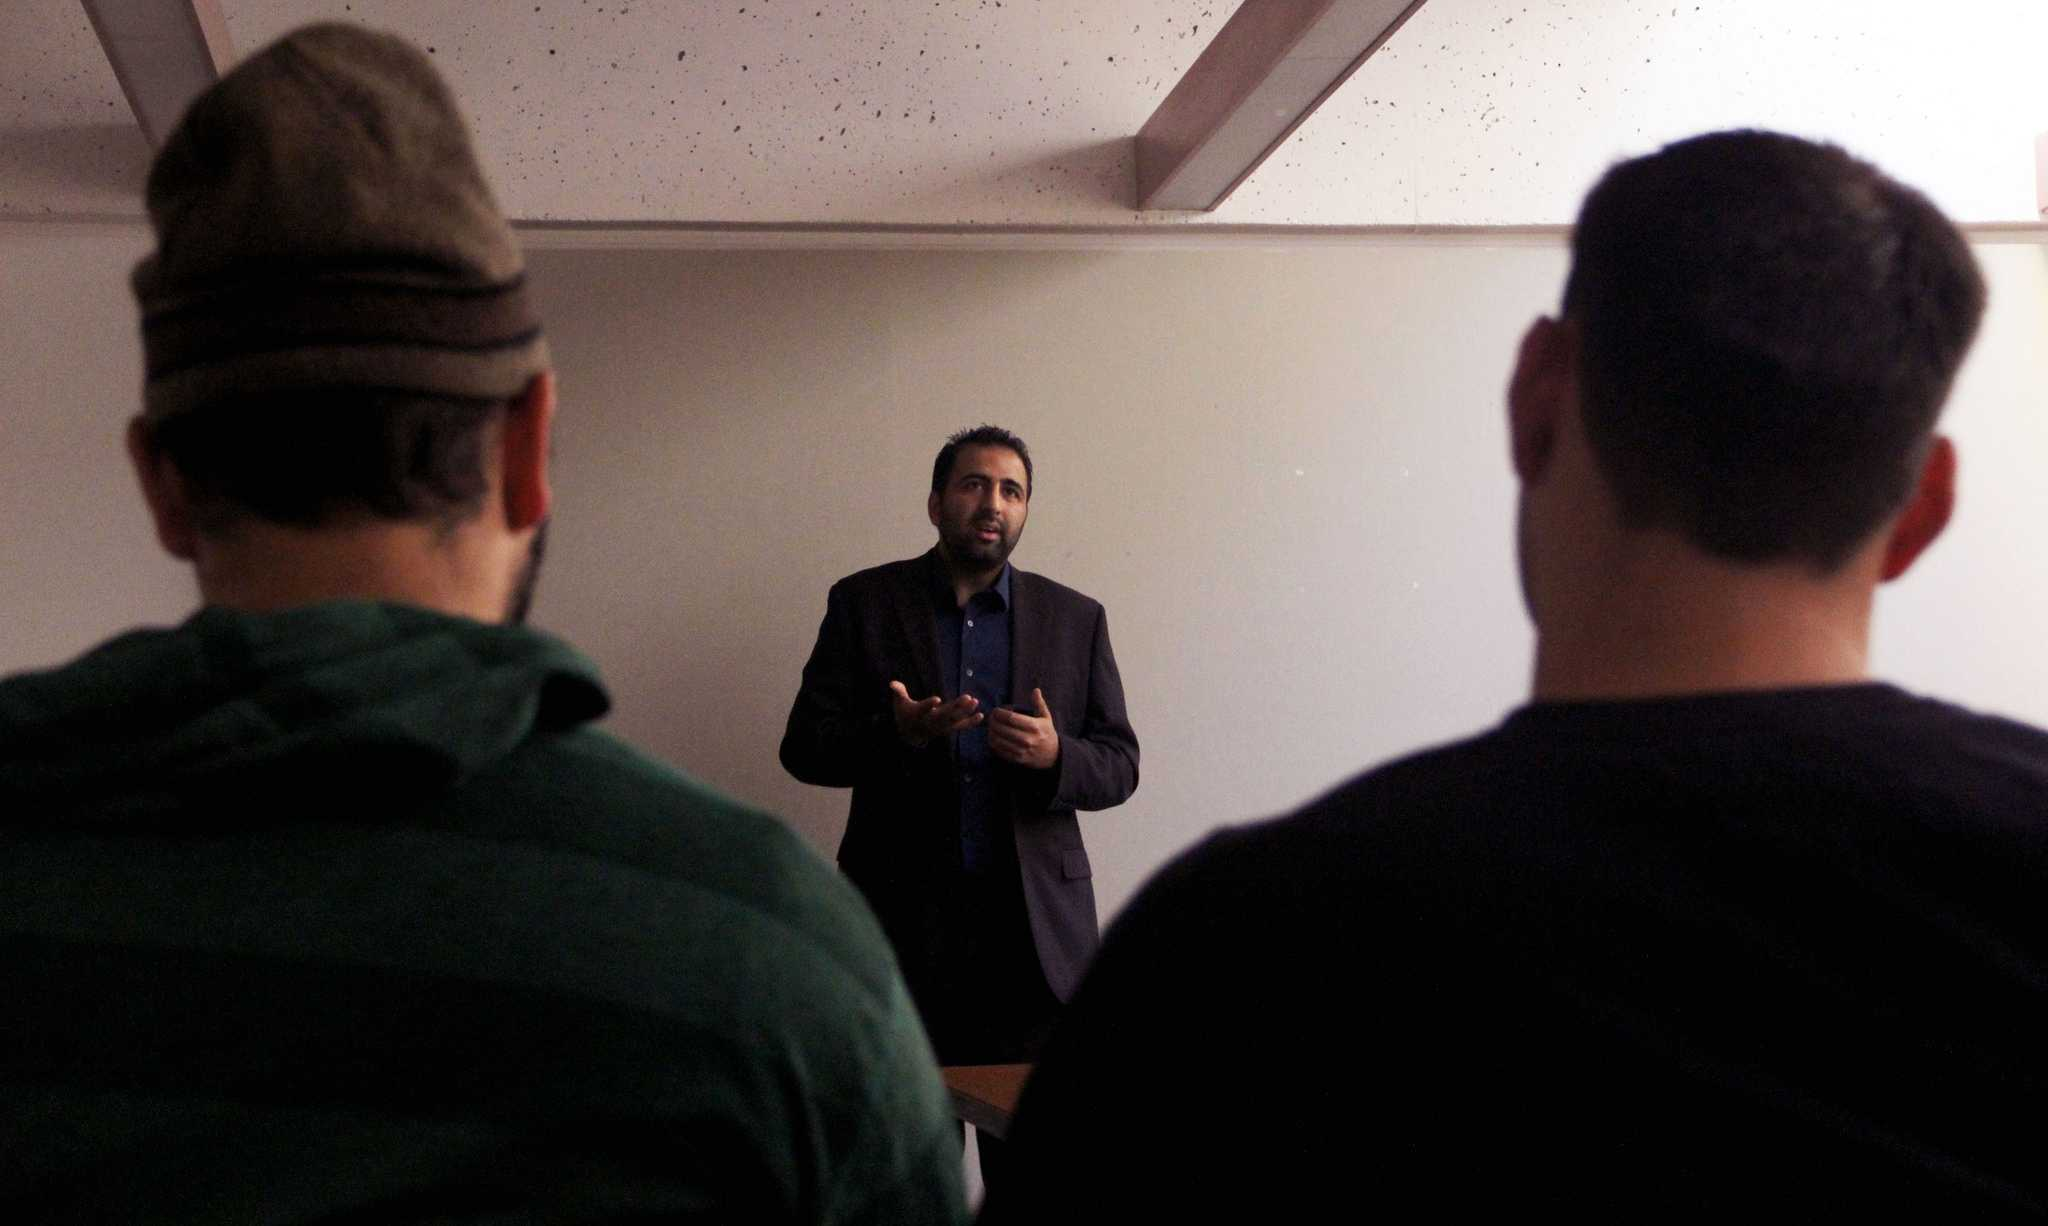 Muslim Zionist, Kasim Hafeez speaks with students about being Pro-Israel on Thursday evening, April 16,2015 at the SF State Rosa Parks conference room. (Angelica Williams / Xpress)